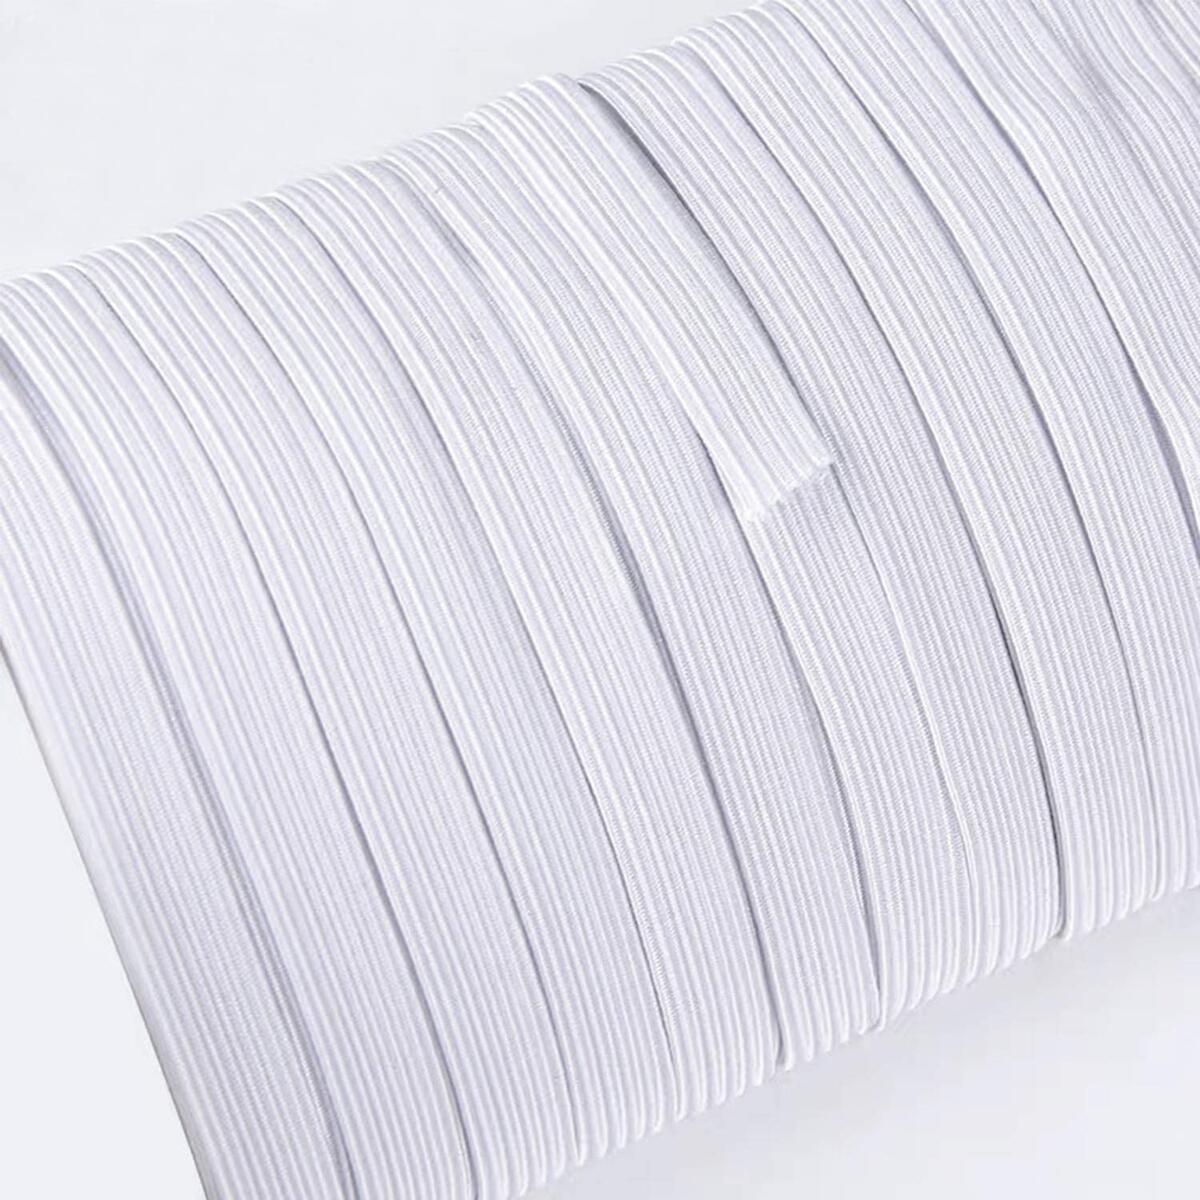 Elastic Bands for Sewing 1/4 inch (6mm) Stretch High Elasticity Elastic String Cord for Masks (20 Yards, White) DIY